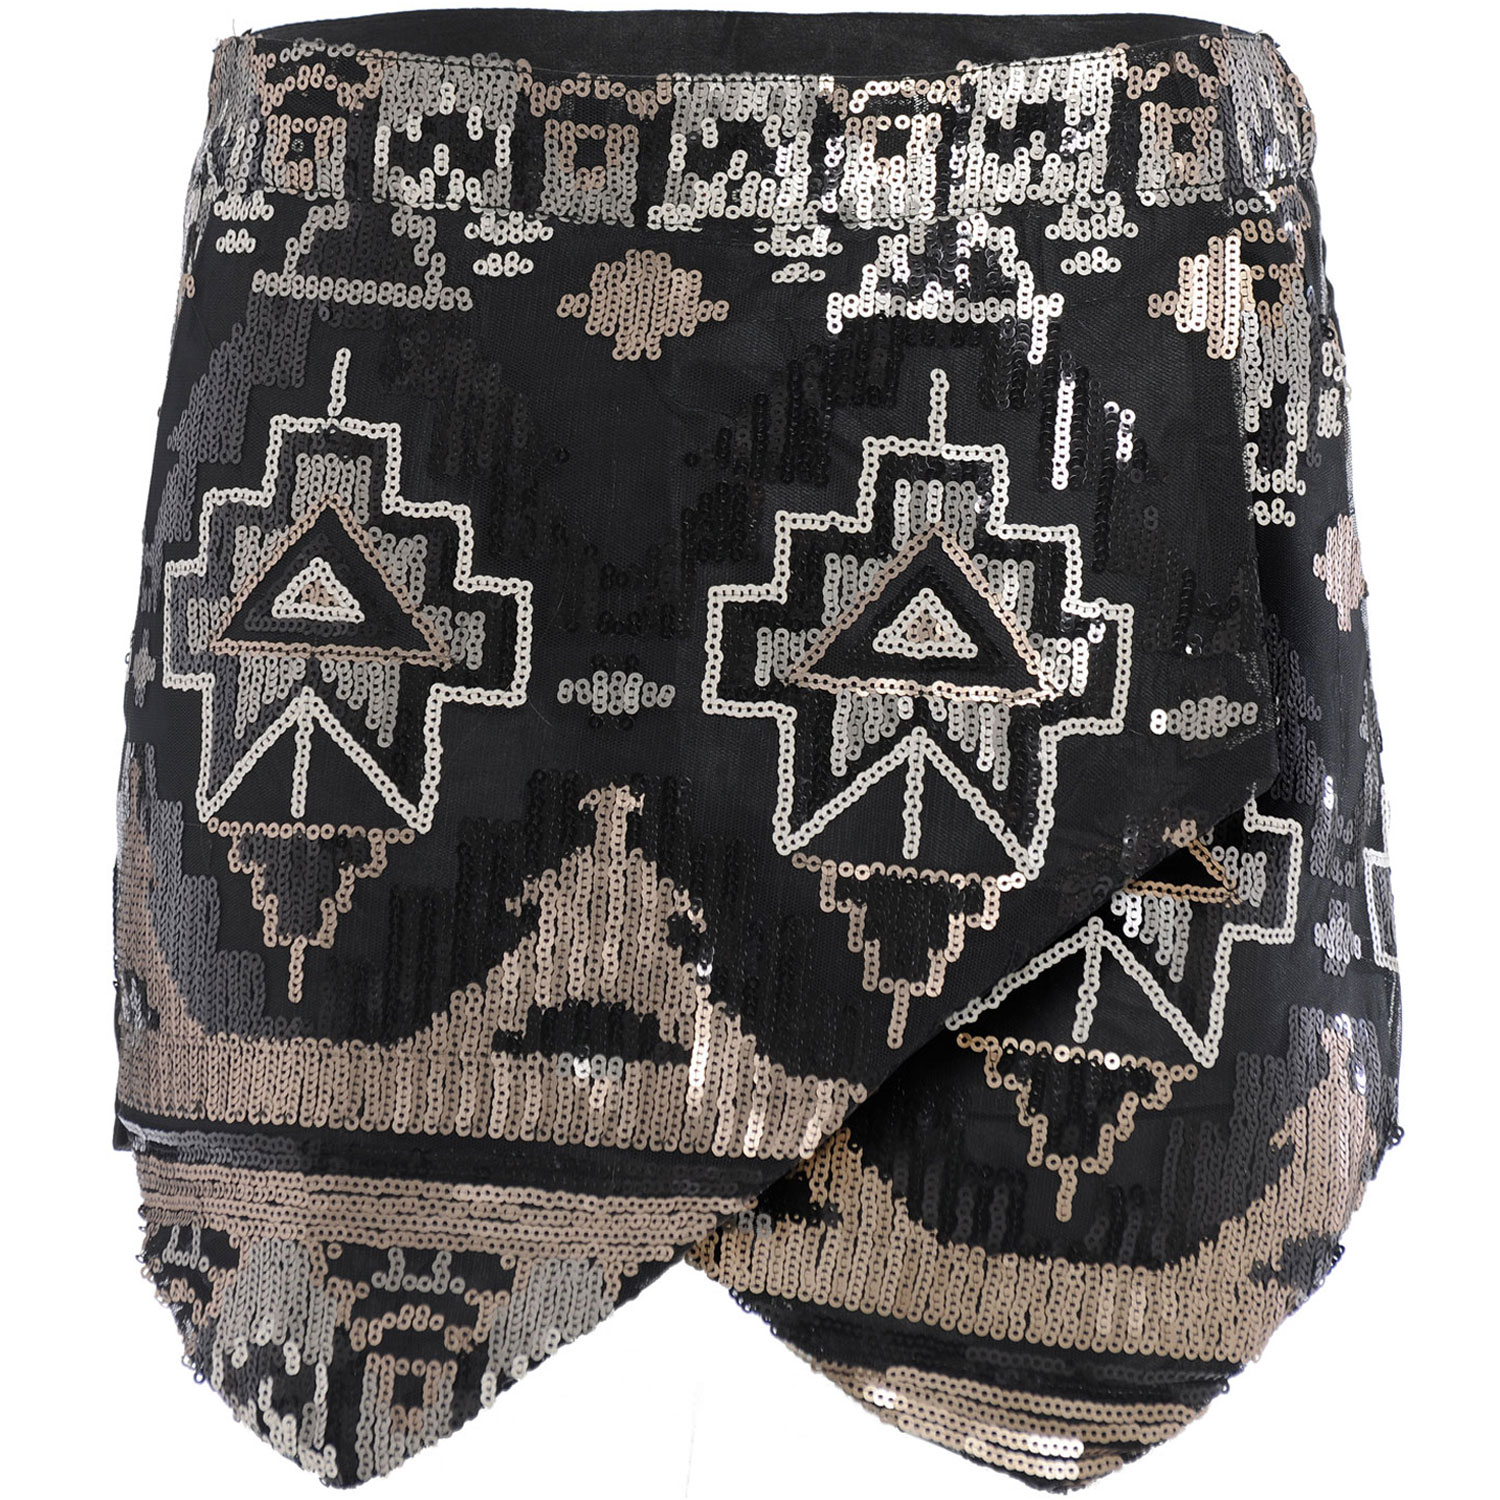 Womens-Ladies-Party-Mini-Short-Sequin-Aztec-Tribal-Skirt-Short-Skorts-Black-8-14